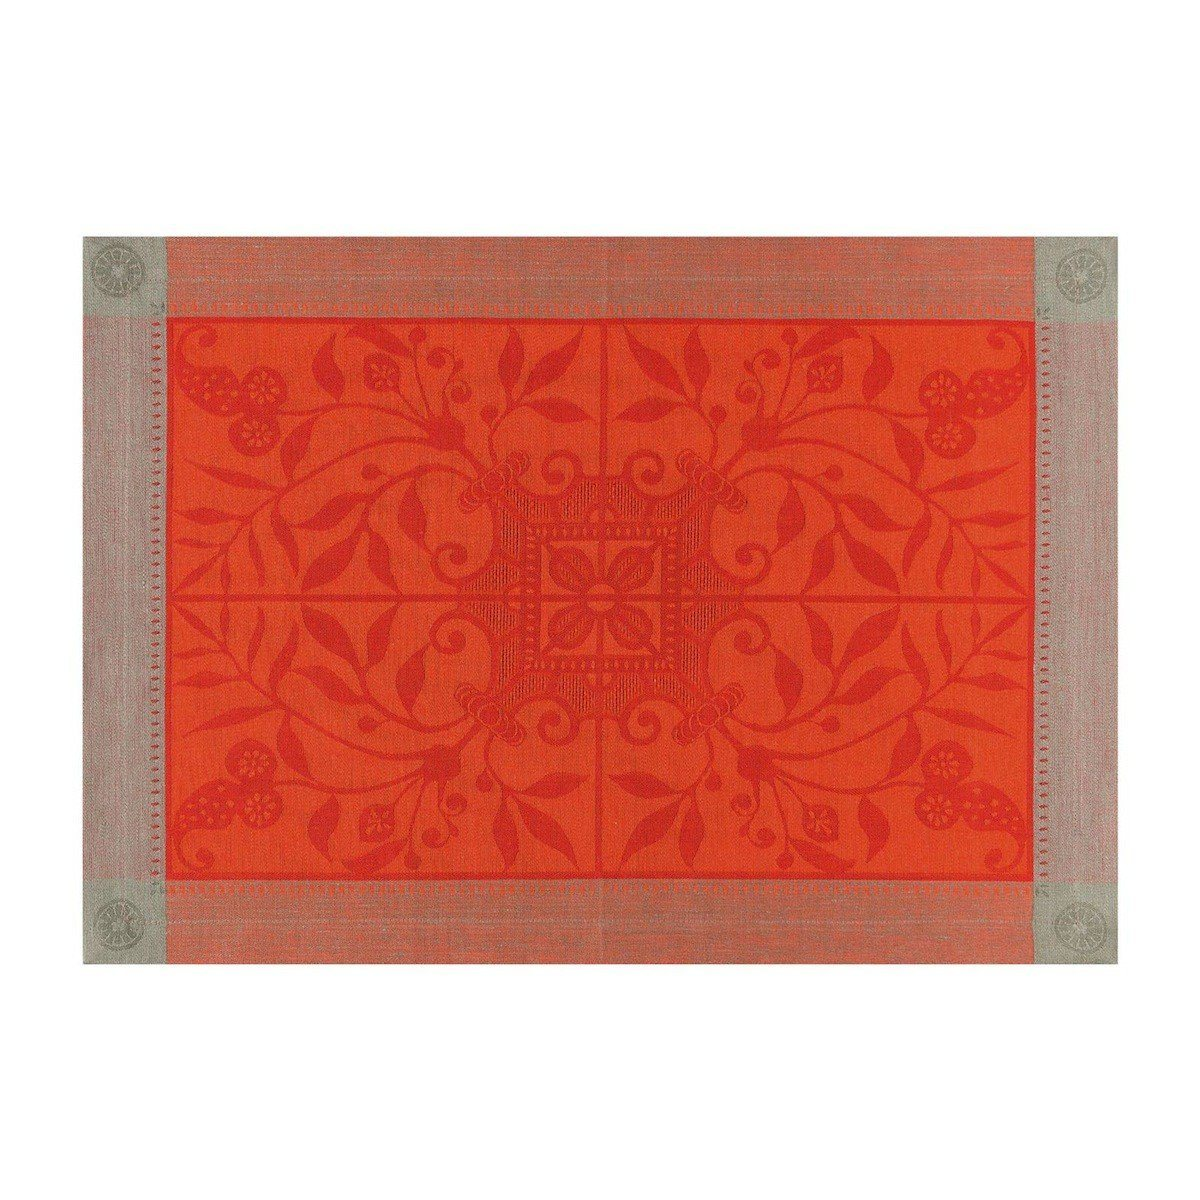 Le Jacquard Français Table Linen Venezia in Cornelian Fig Linens Orange placemat